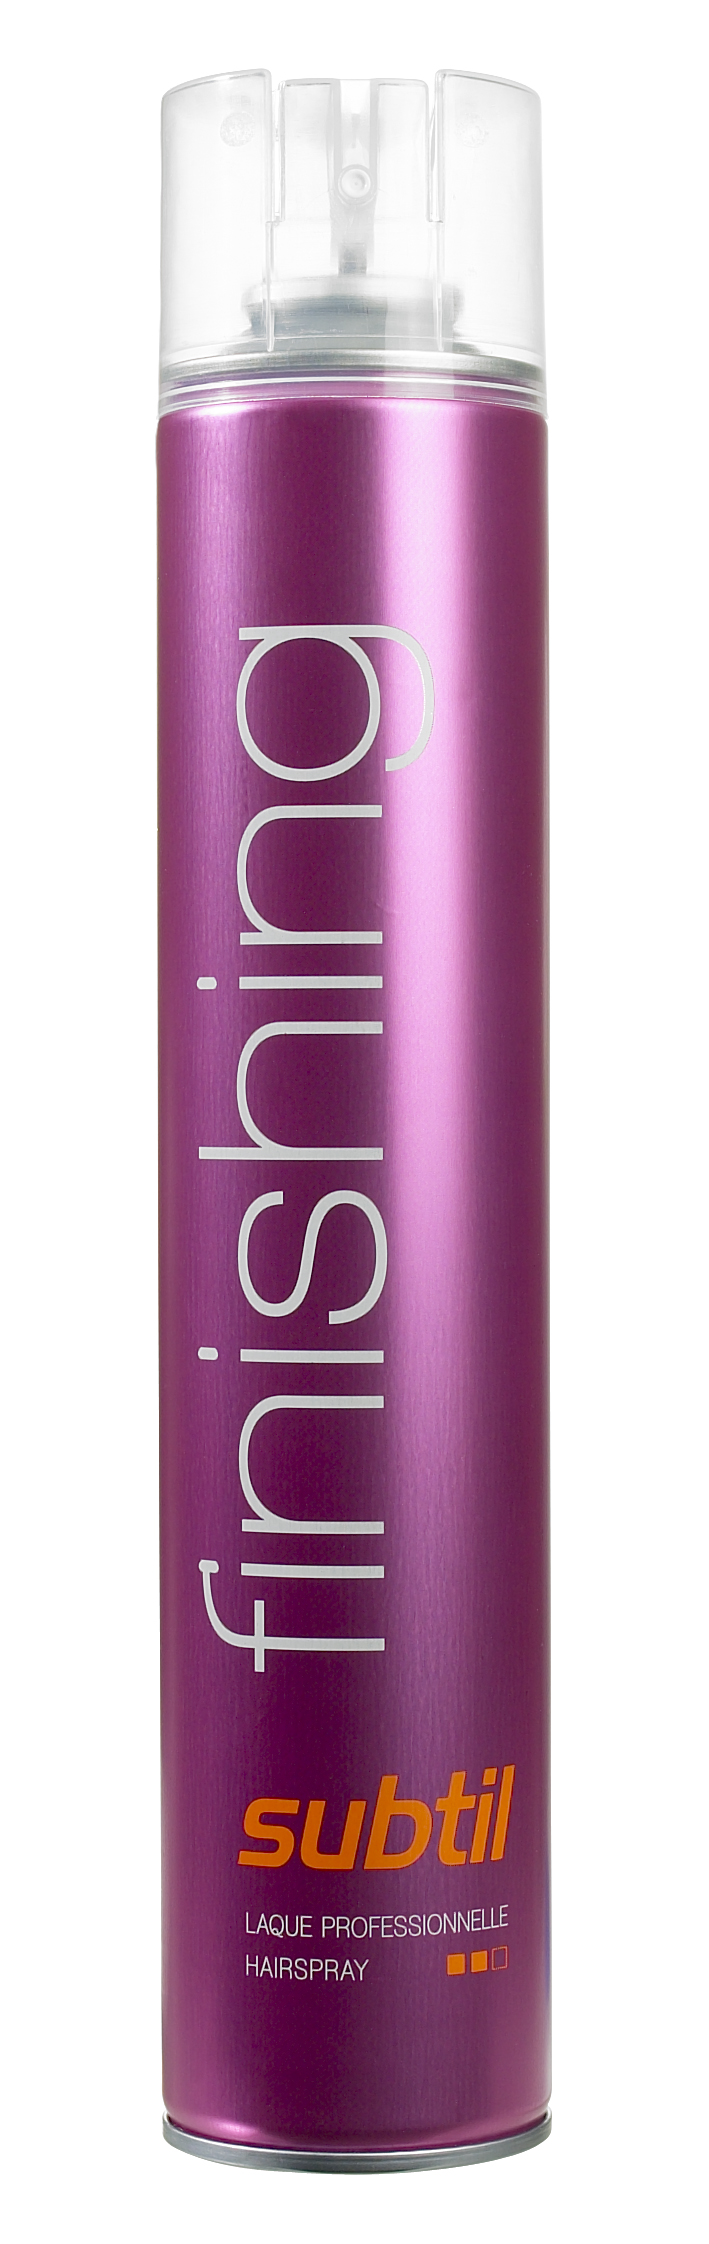 Subtil finishing laque professionnelle 500 ml